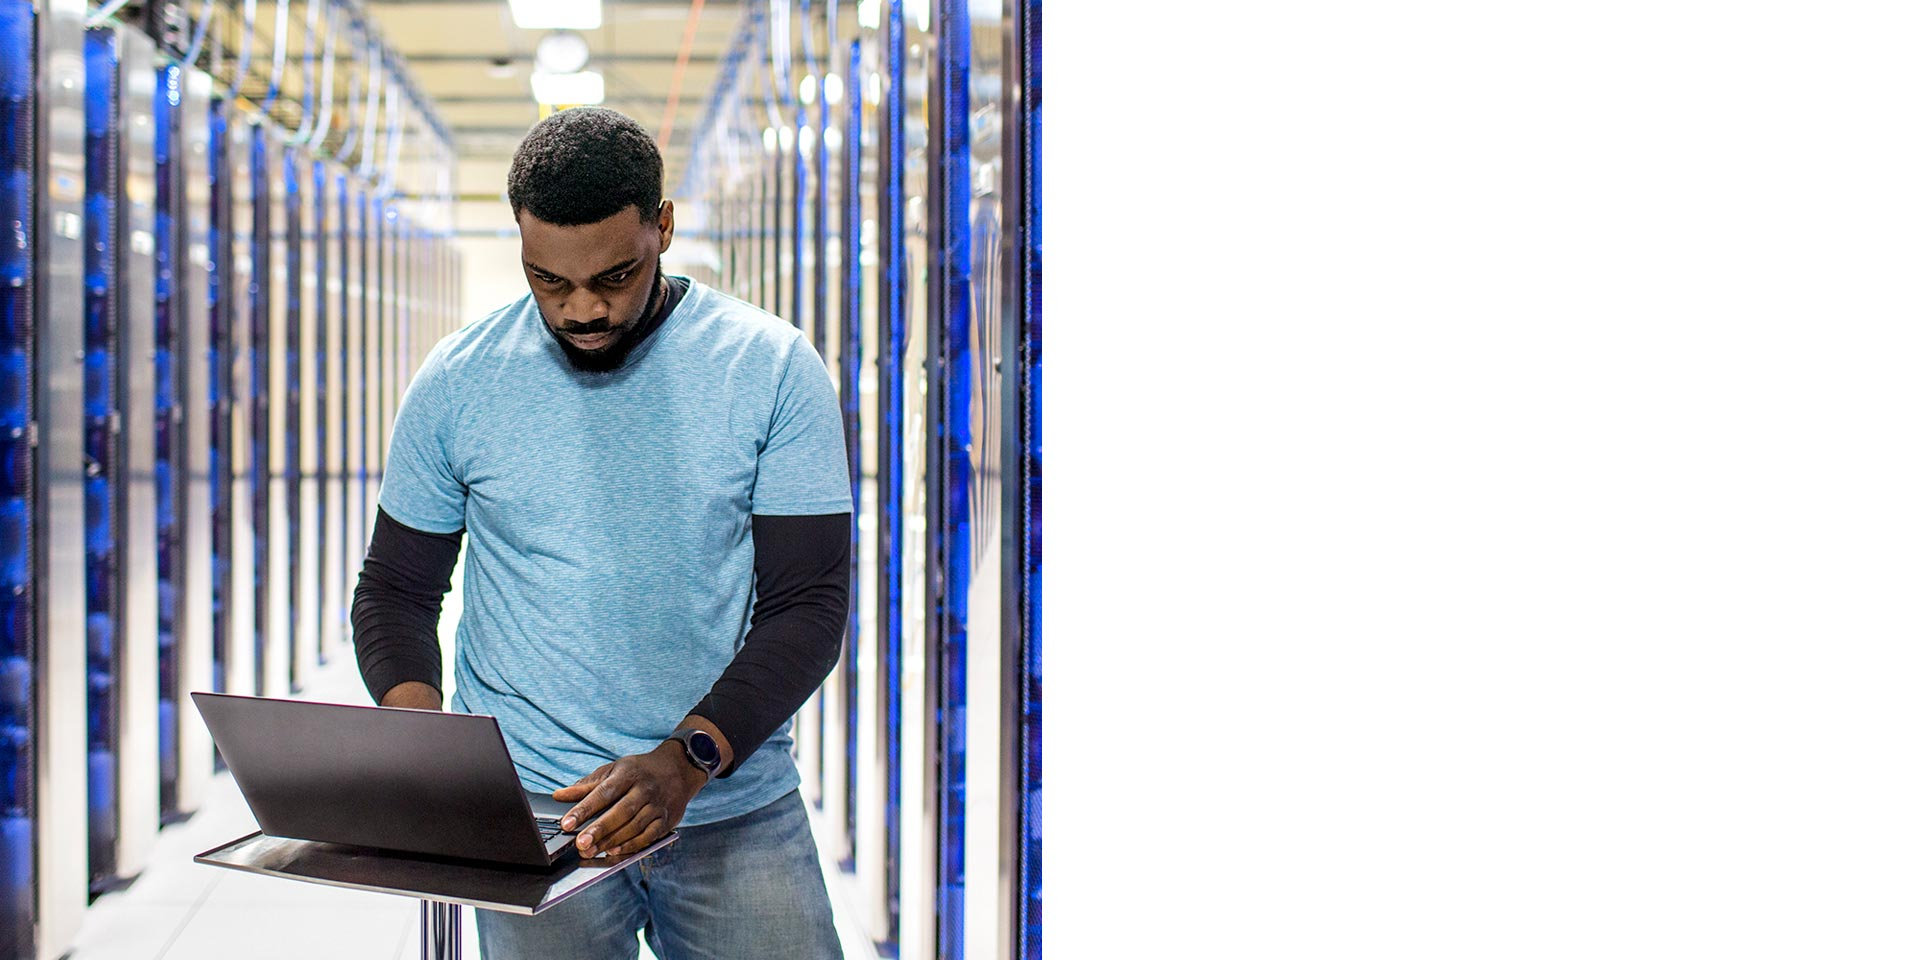 Man using a laptop in a data centre